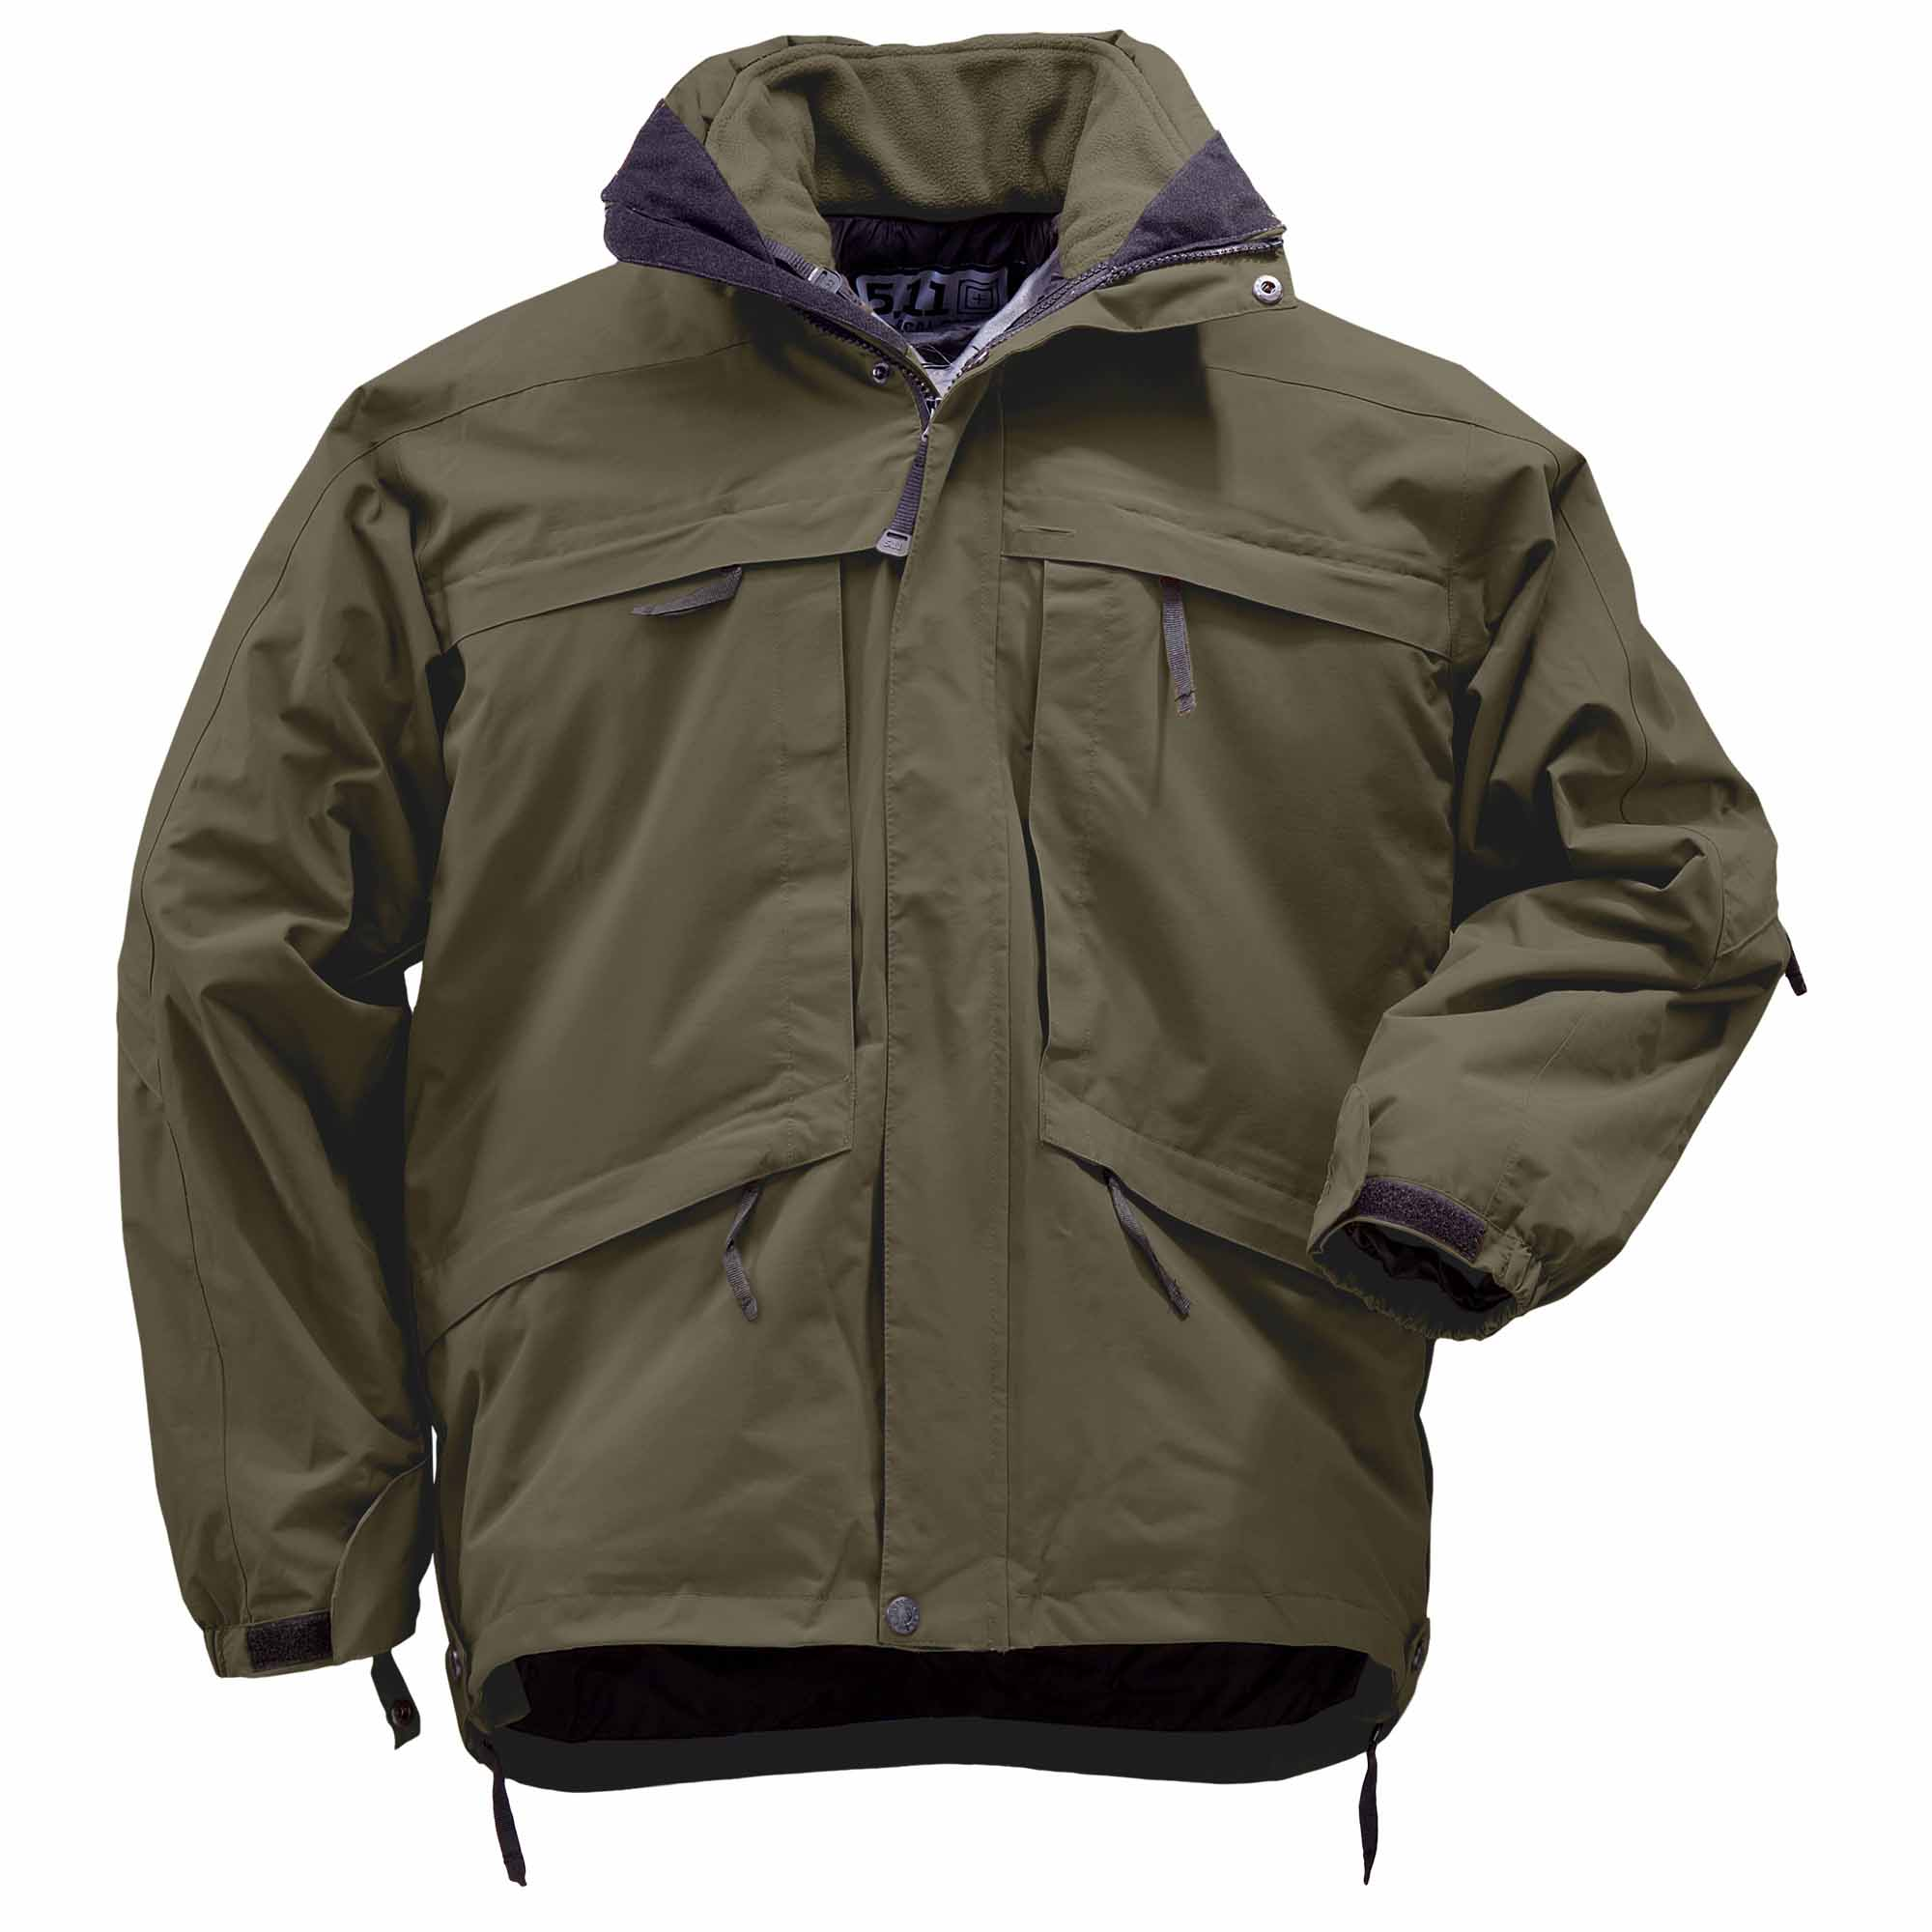 5.11 Tactical Men's Aggressor Parka Jacket™ (Green) thumbnail